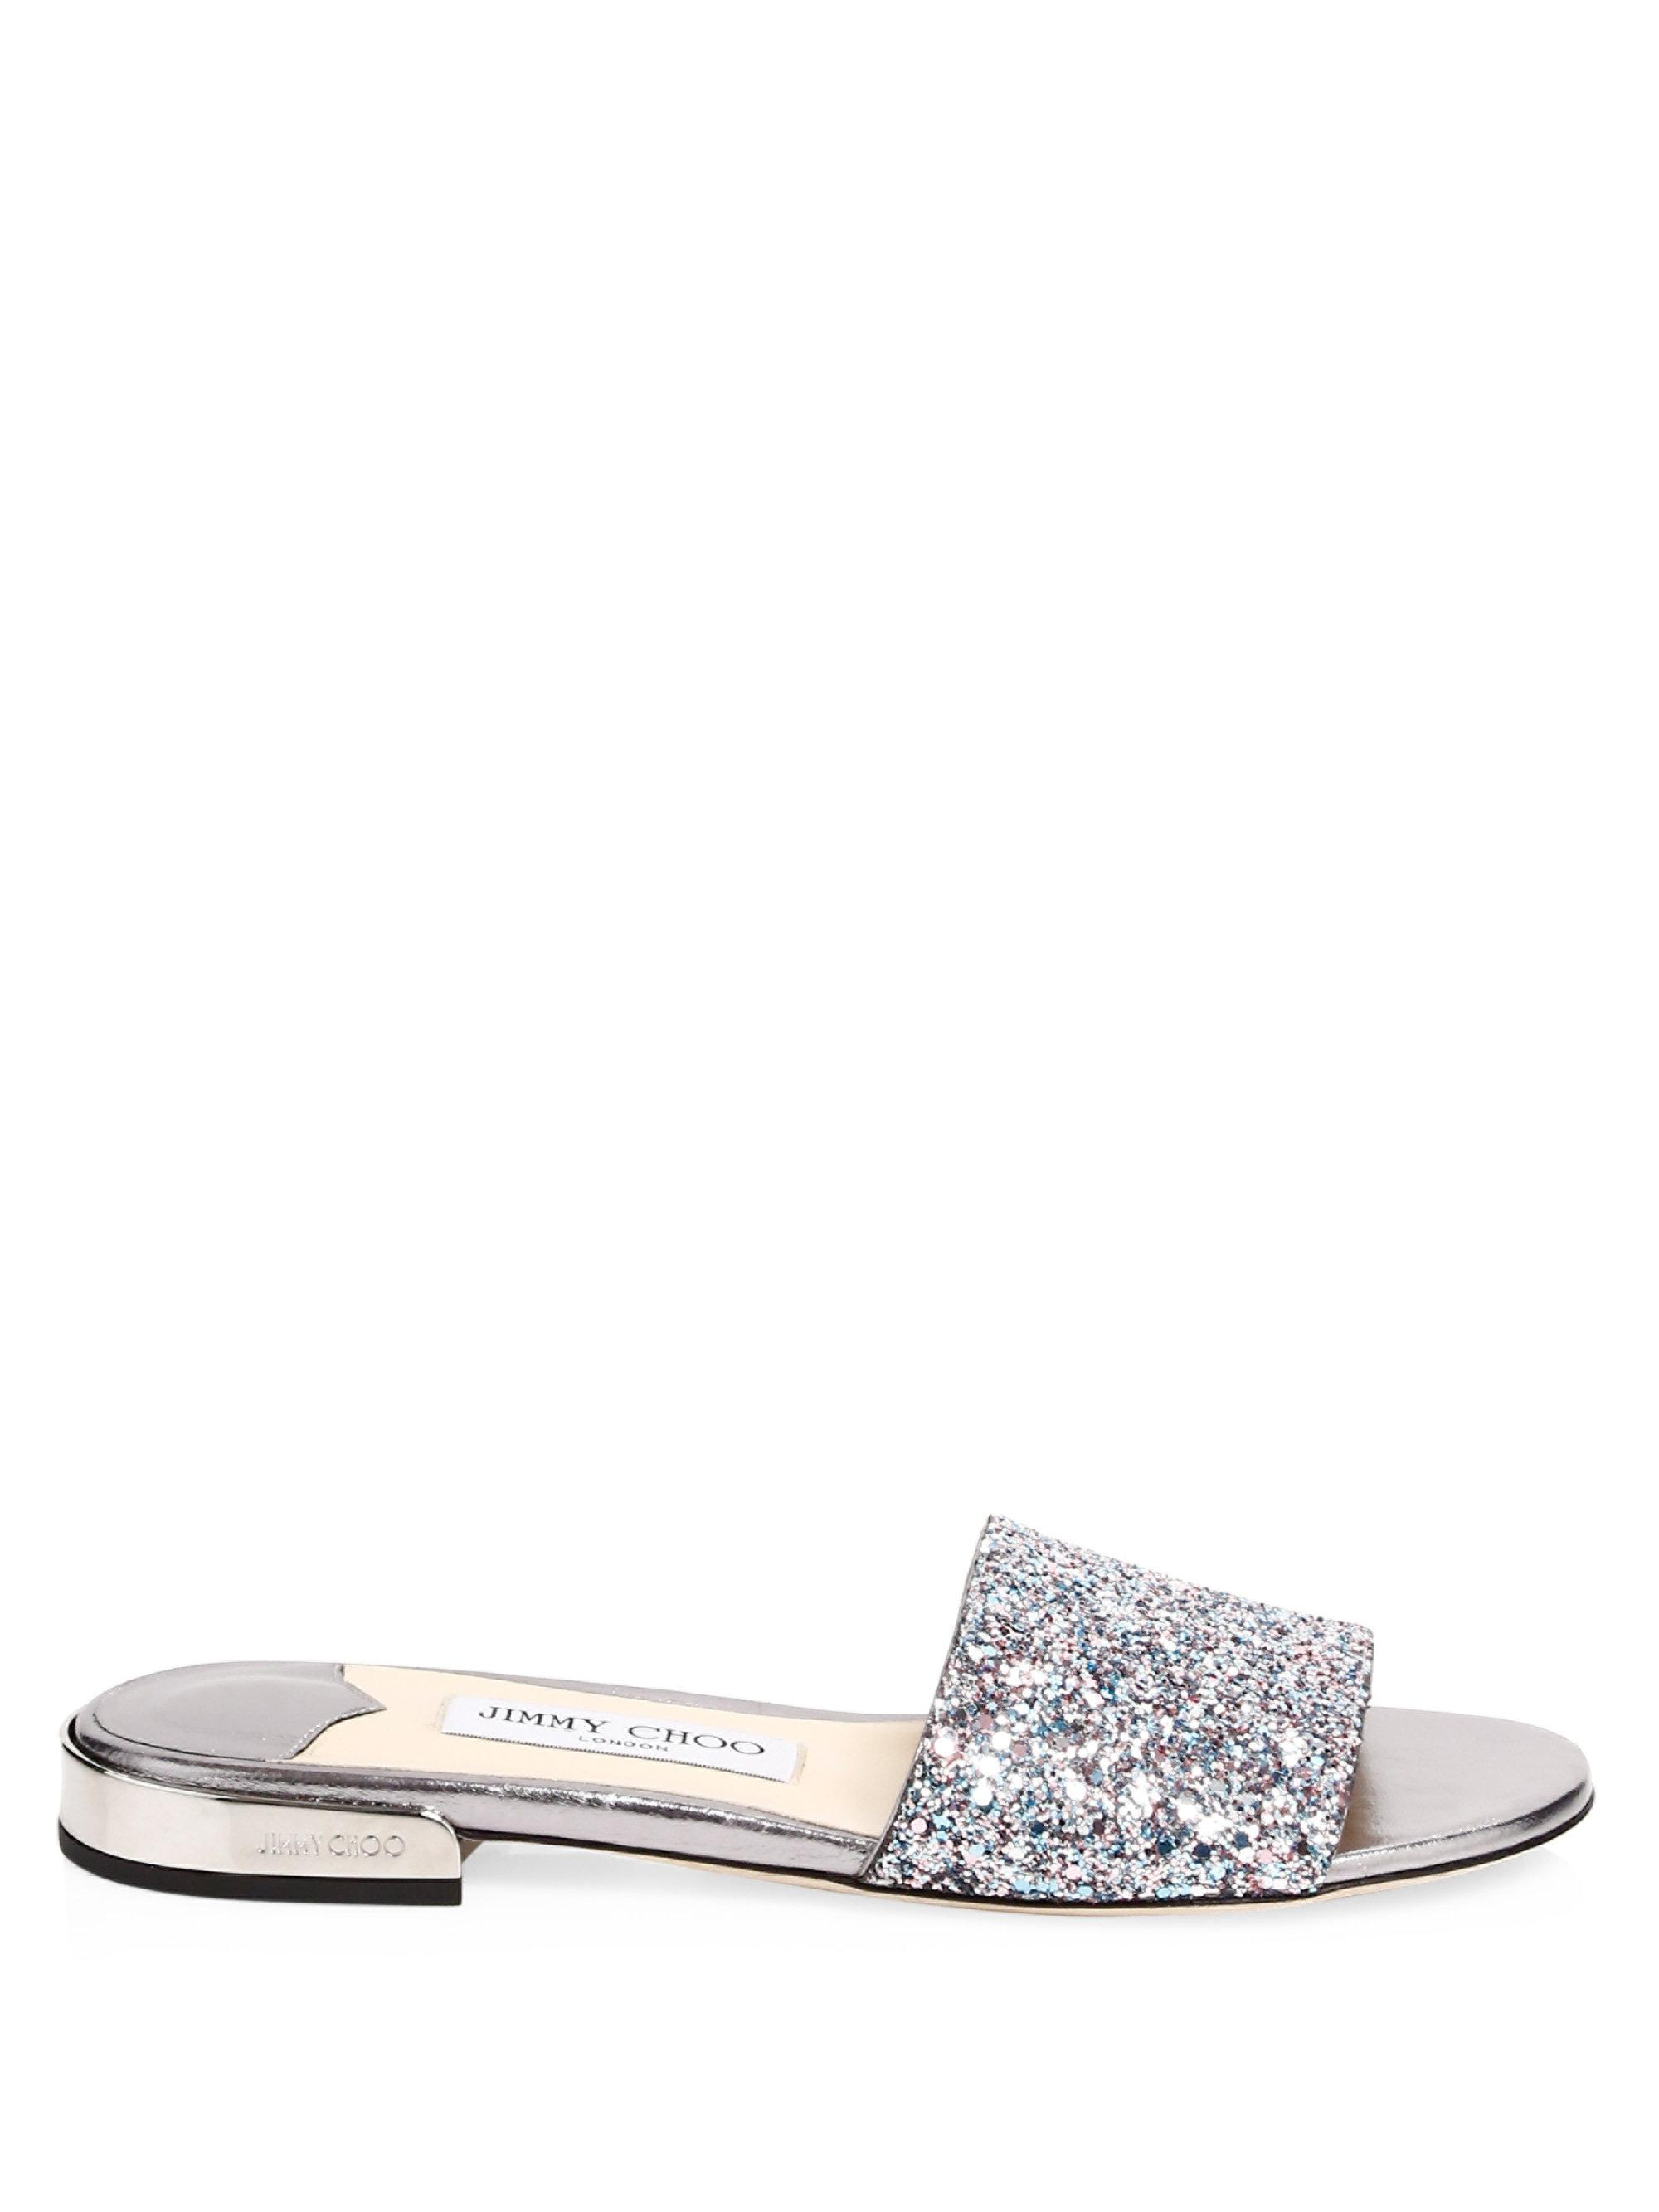 Jimmy choo Joni Glitter-Embossed Leather Slides nPXOe4